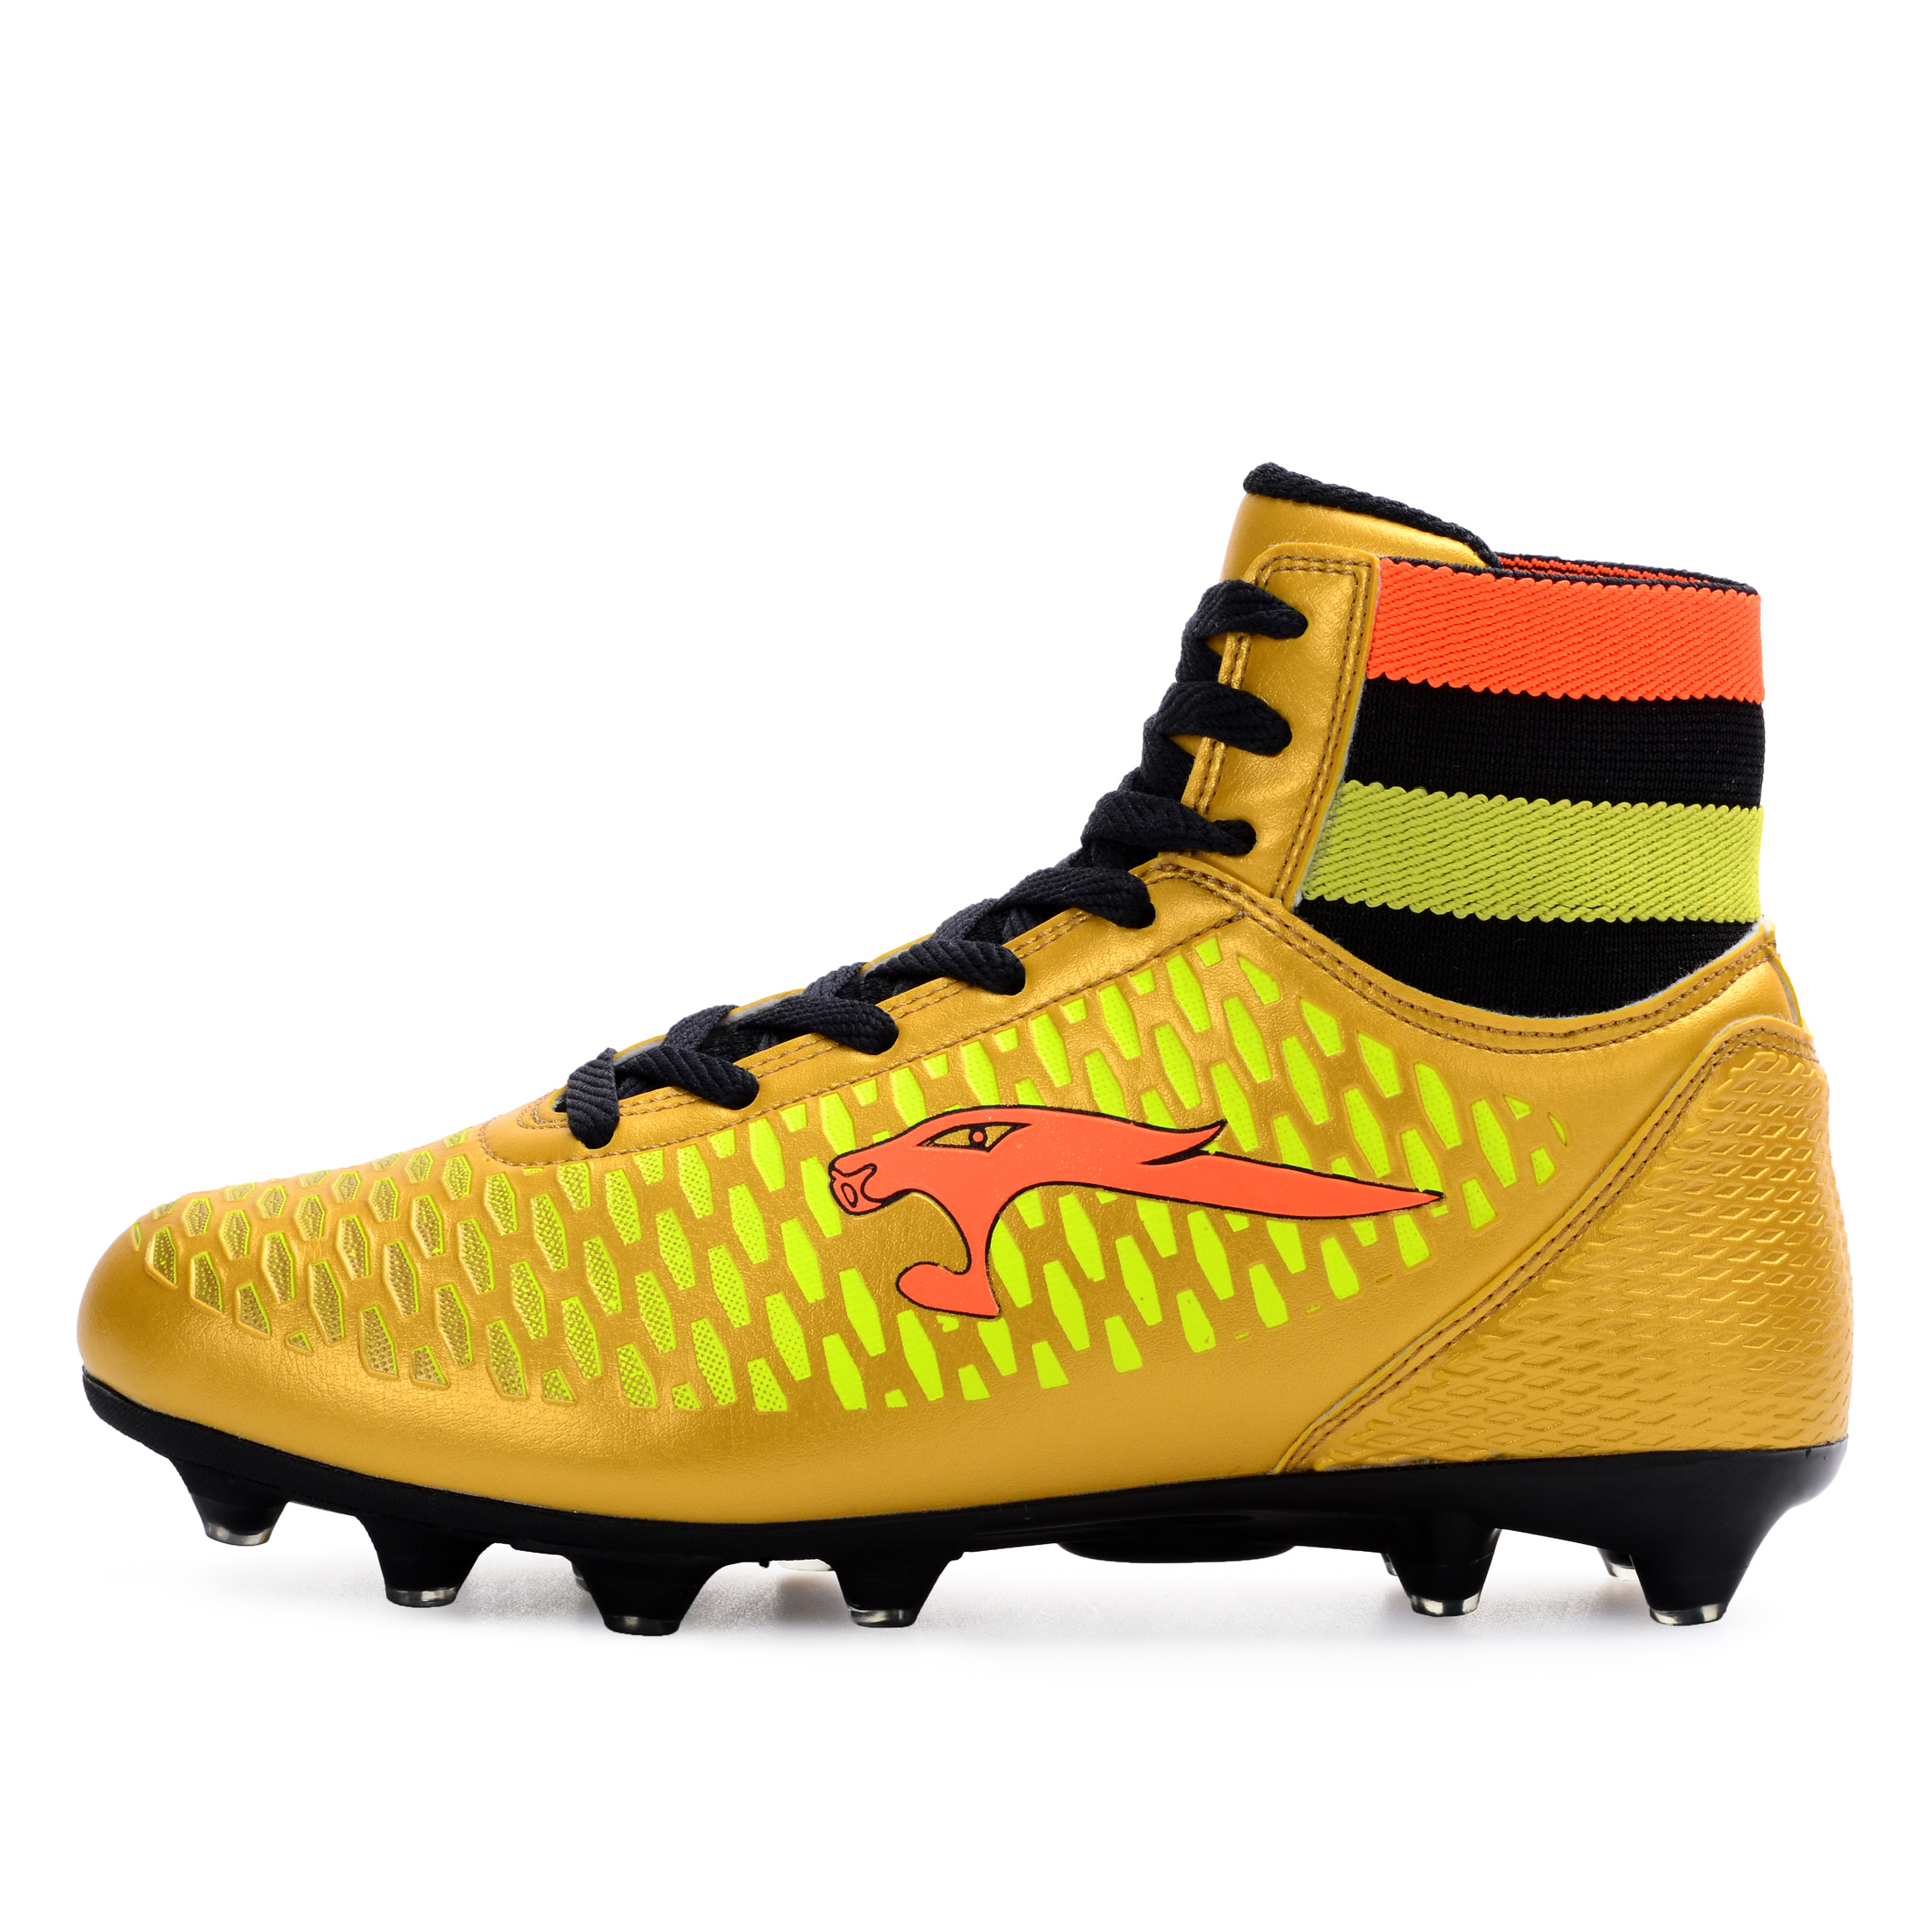 Compare Prices on Soccer Cleats Men- Online Shopping/Buy Low Price ...